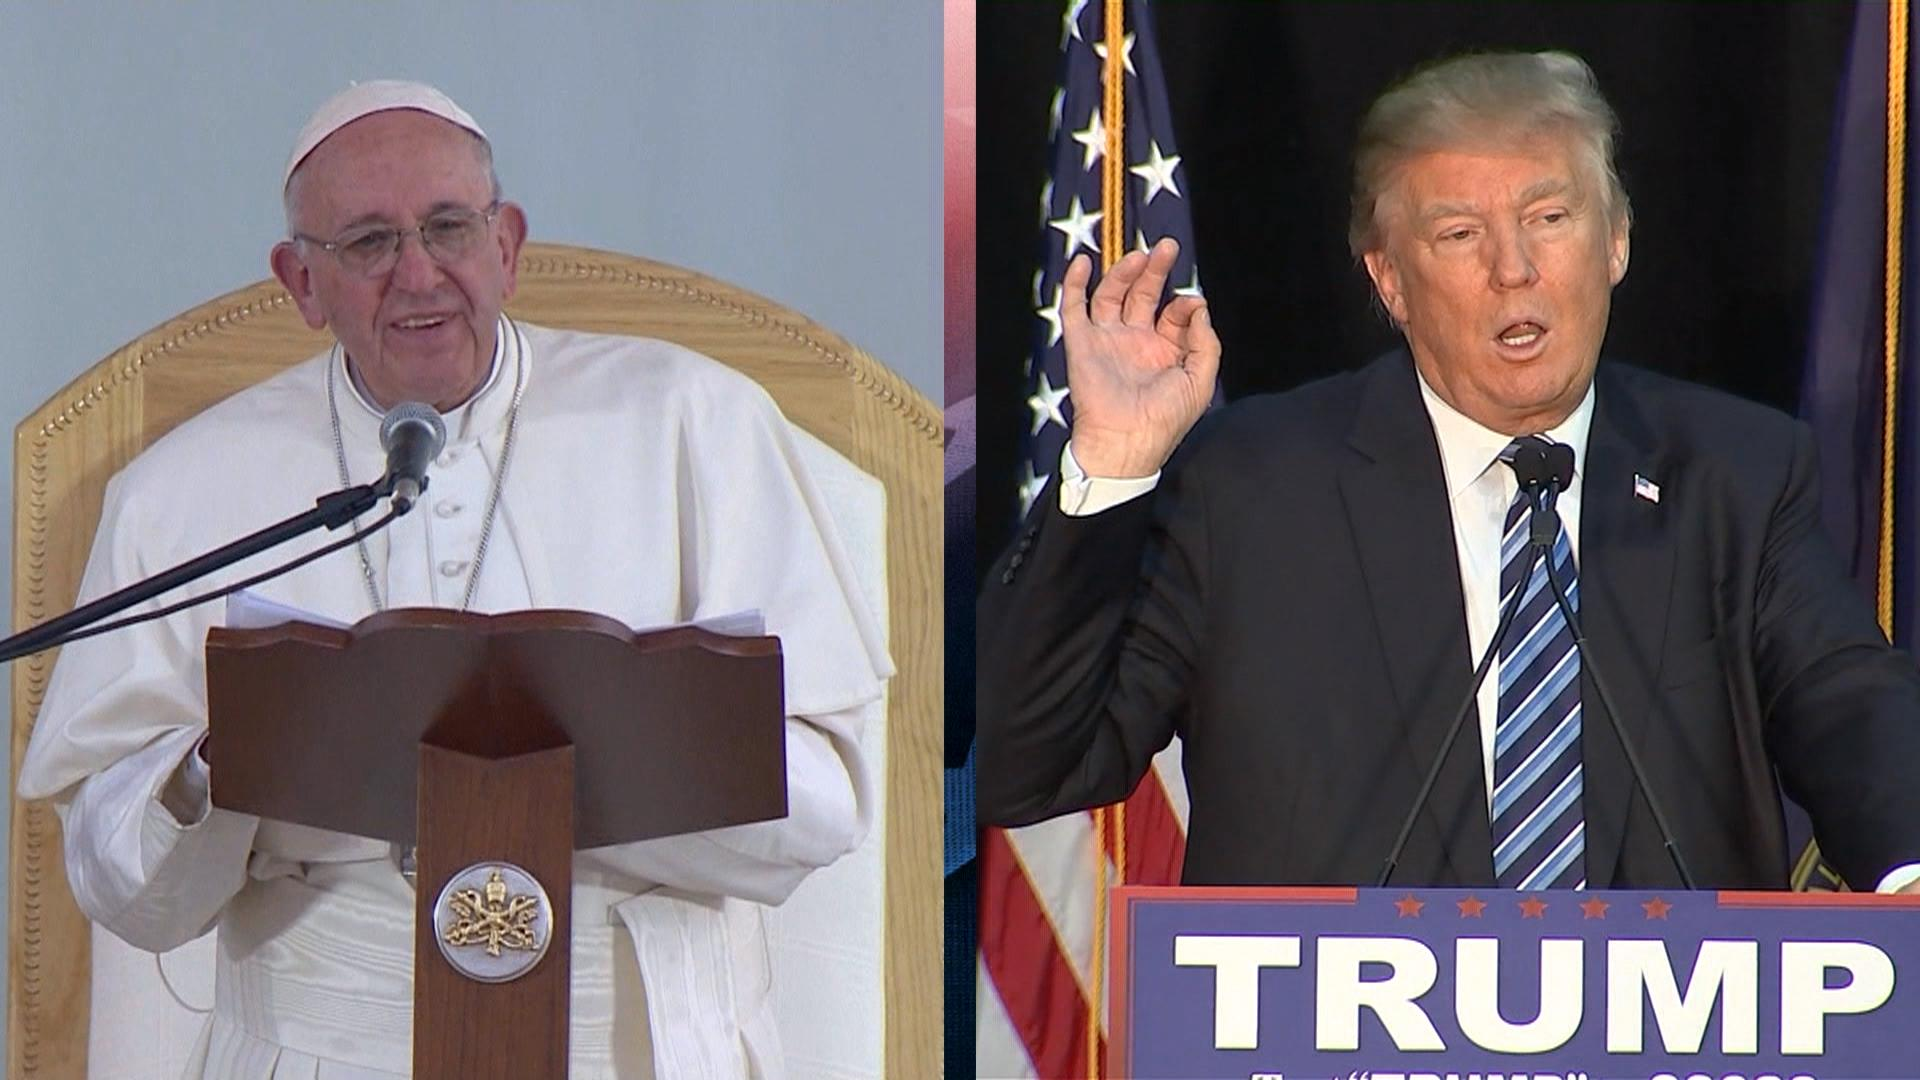 Did the Pope question Trump's Christianity?